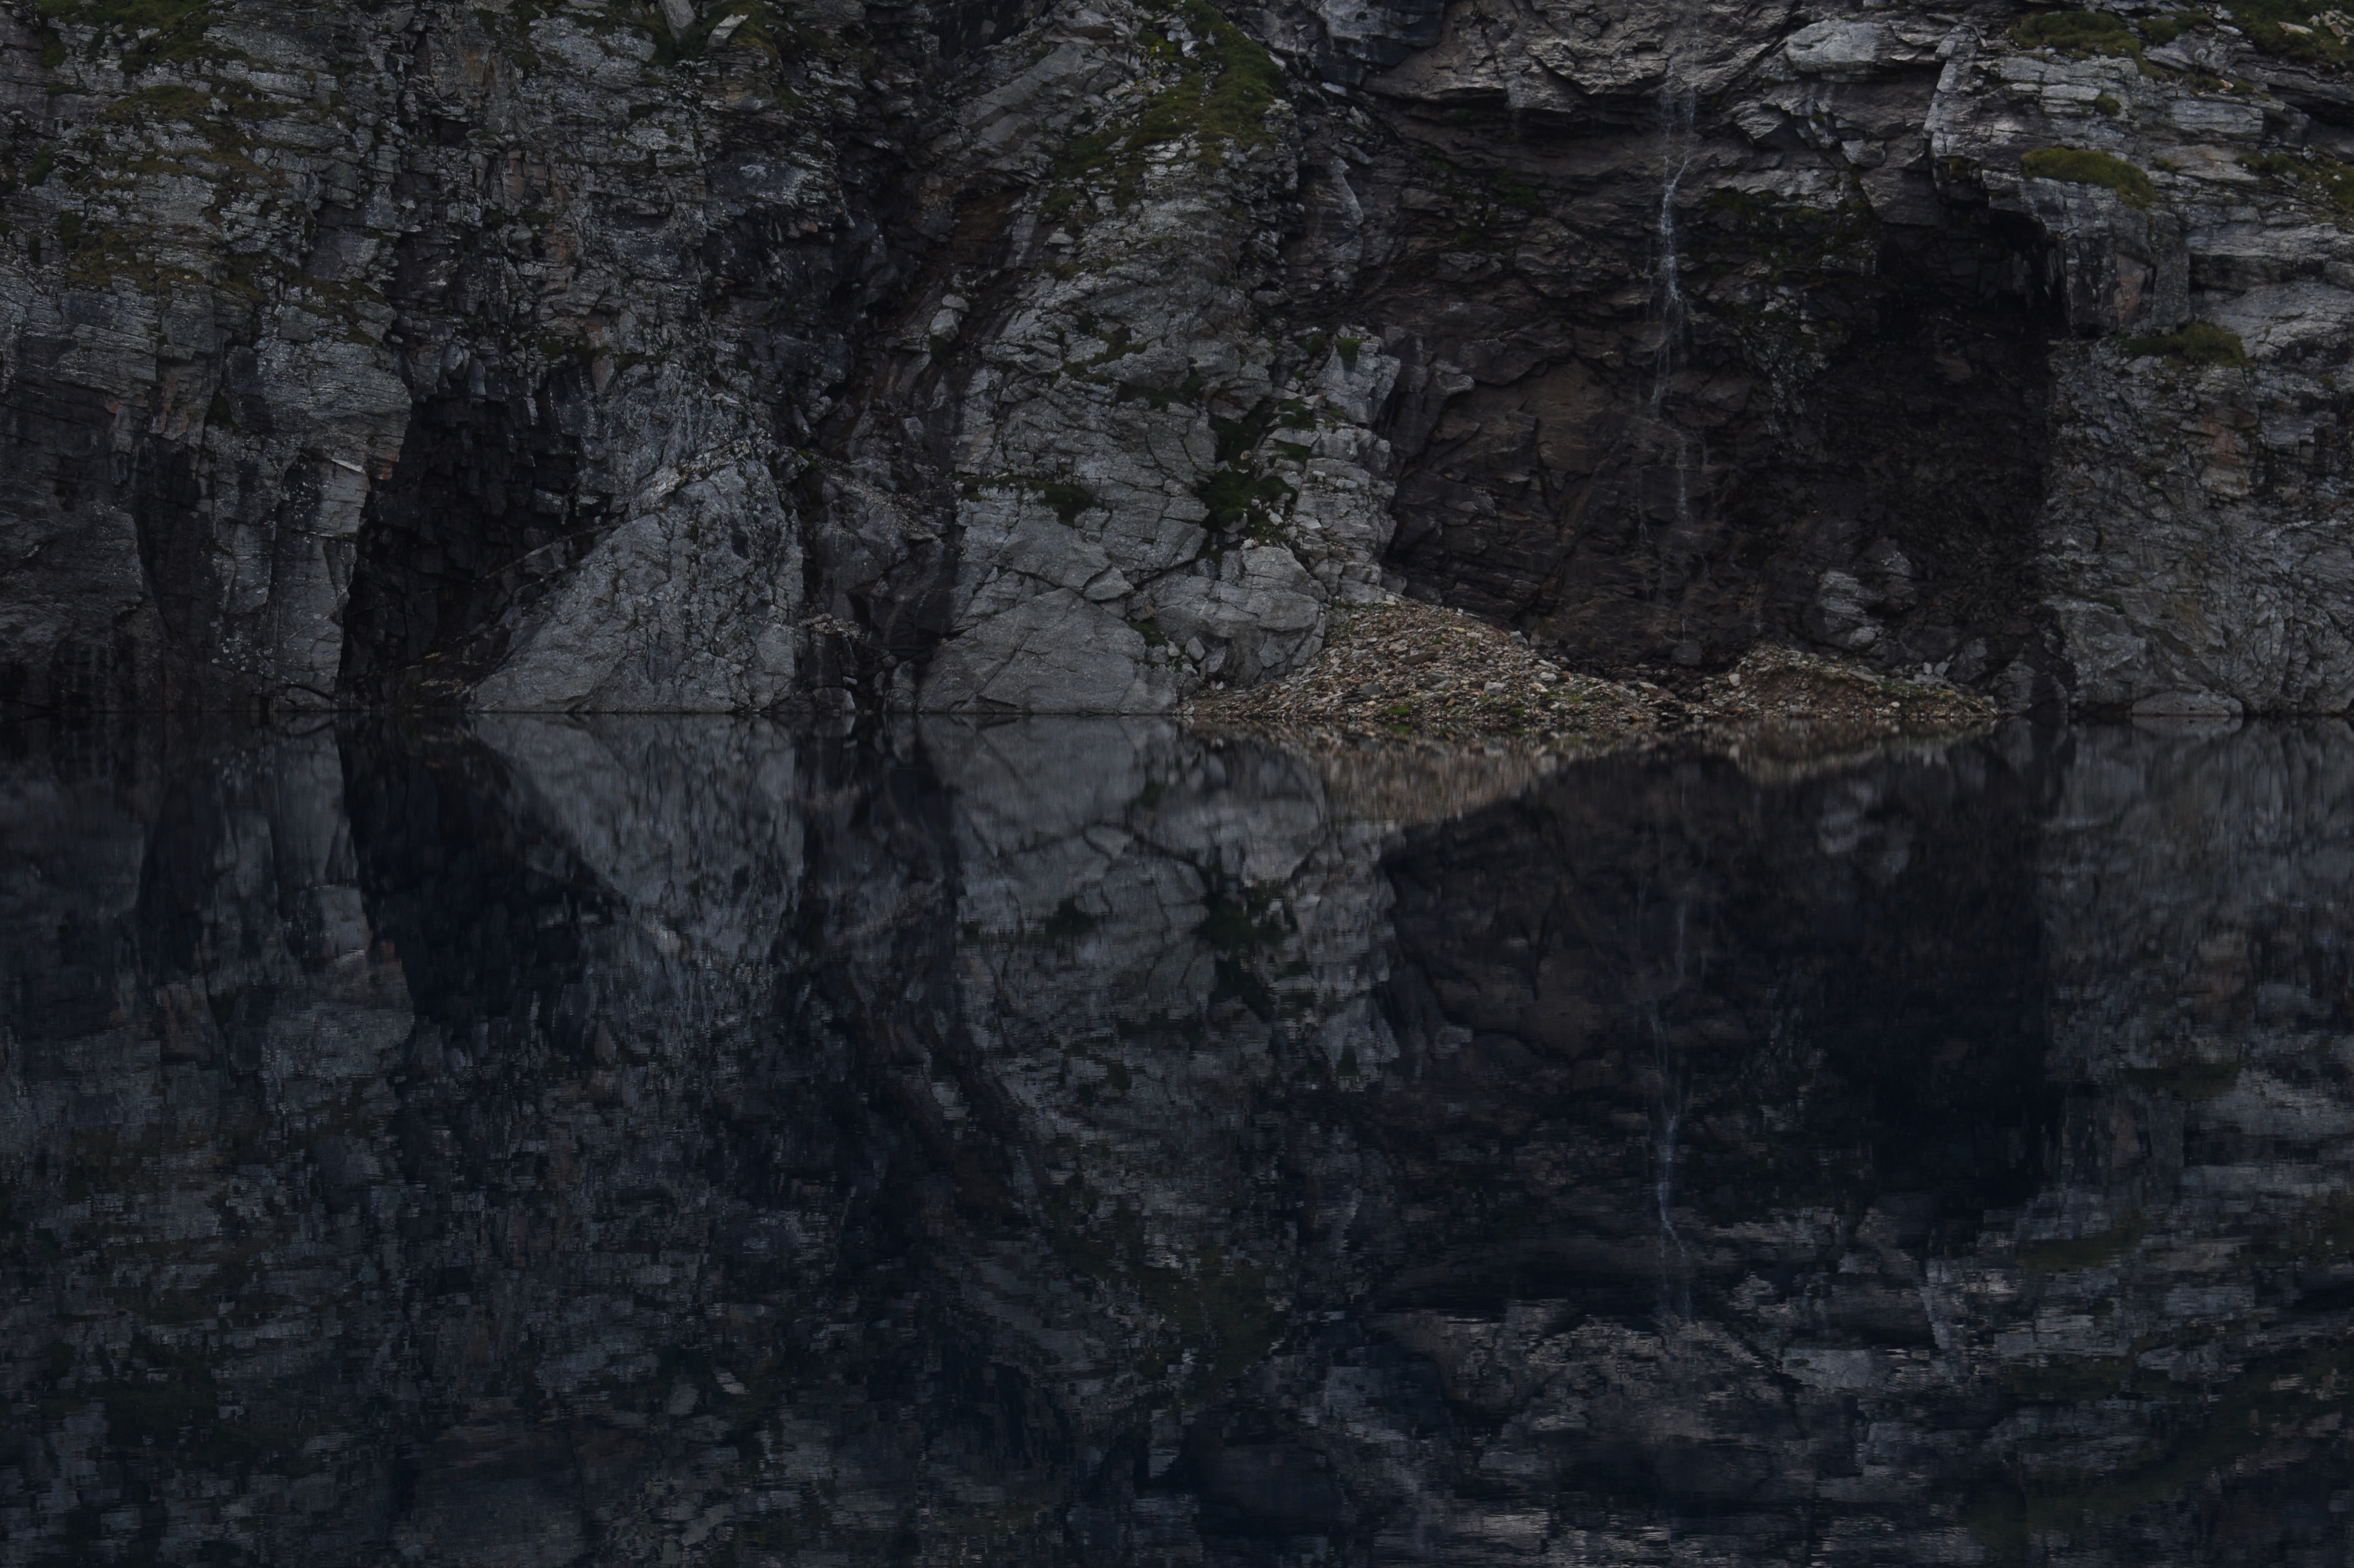 brown and gray cave with body of water